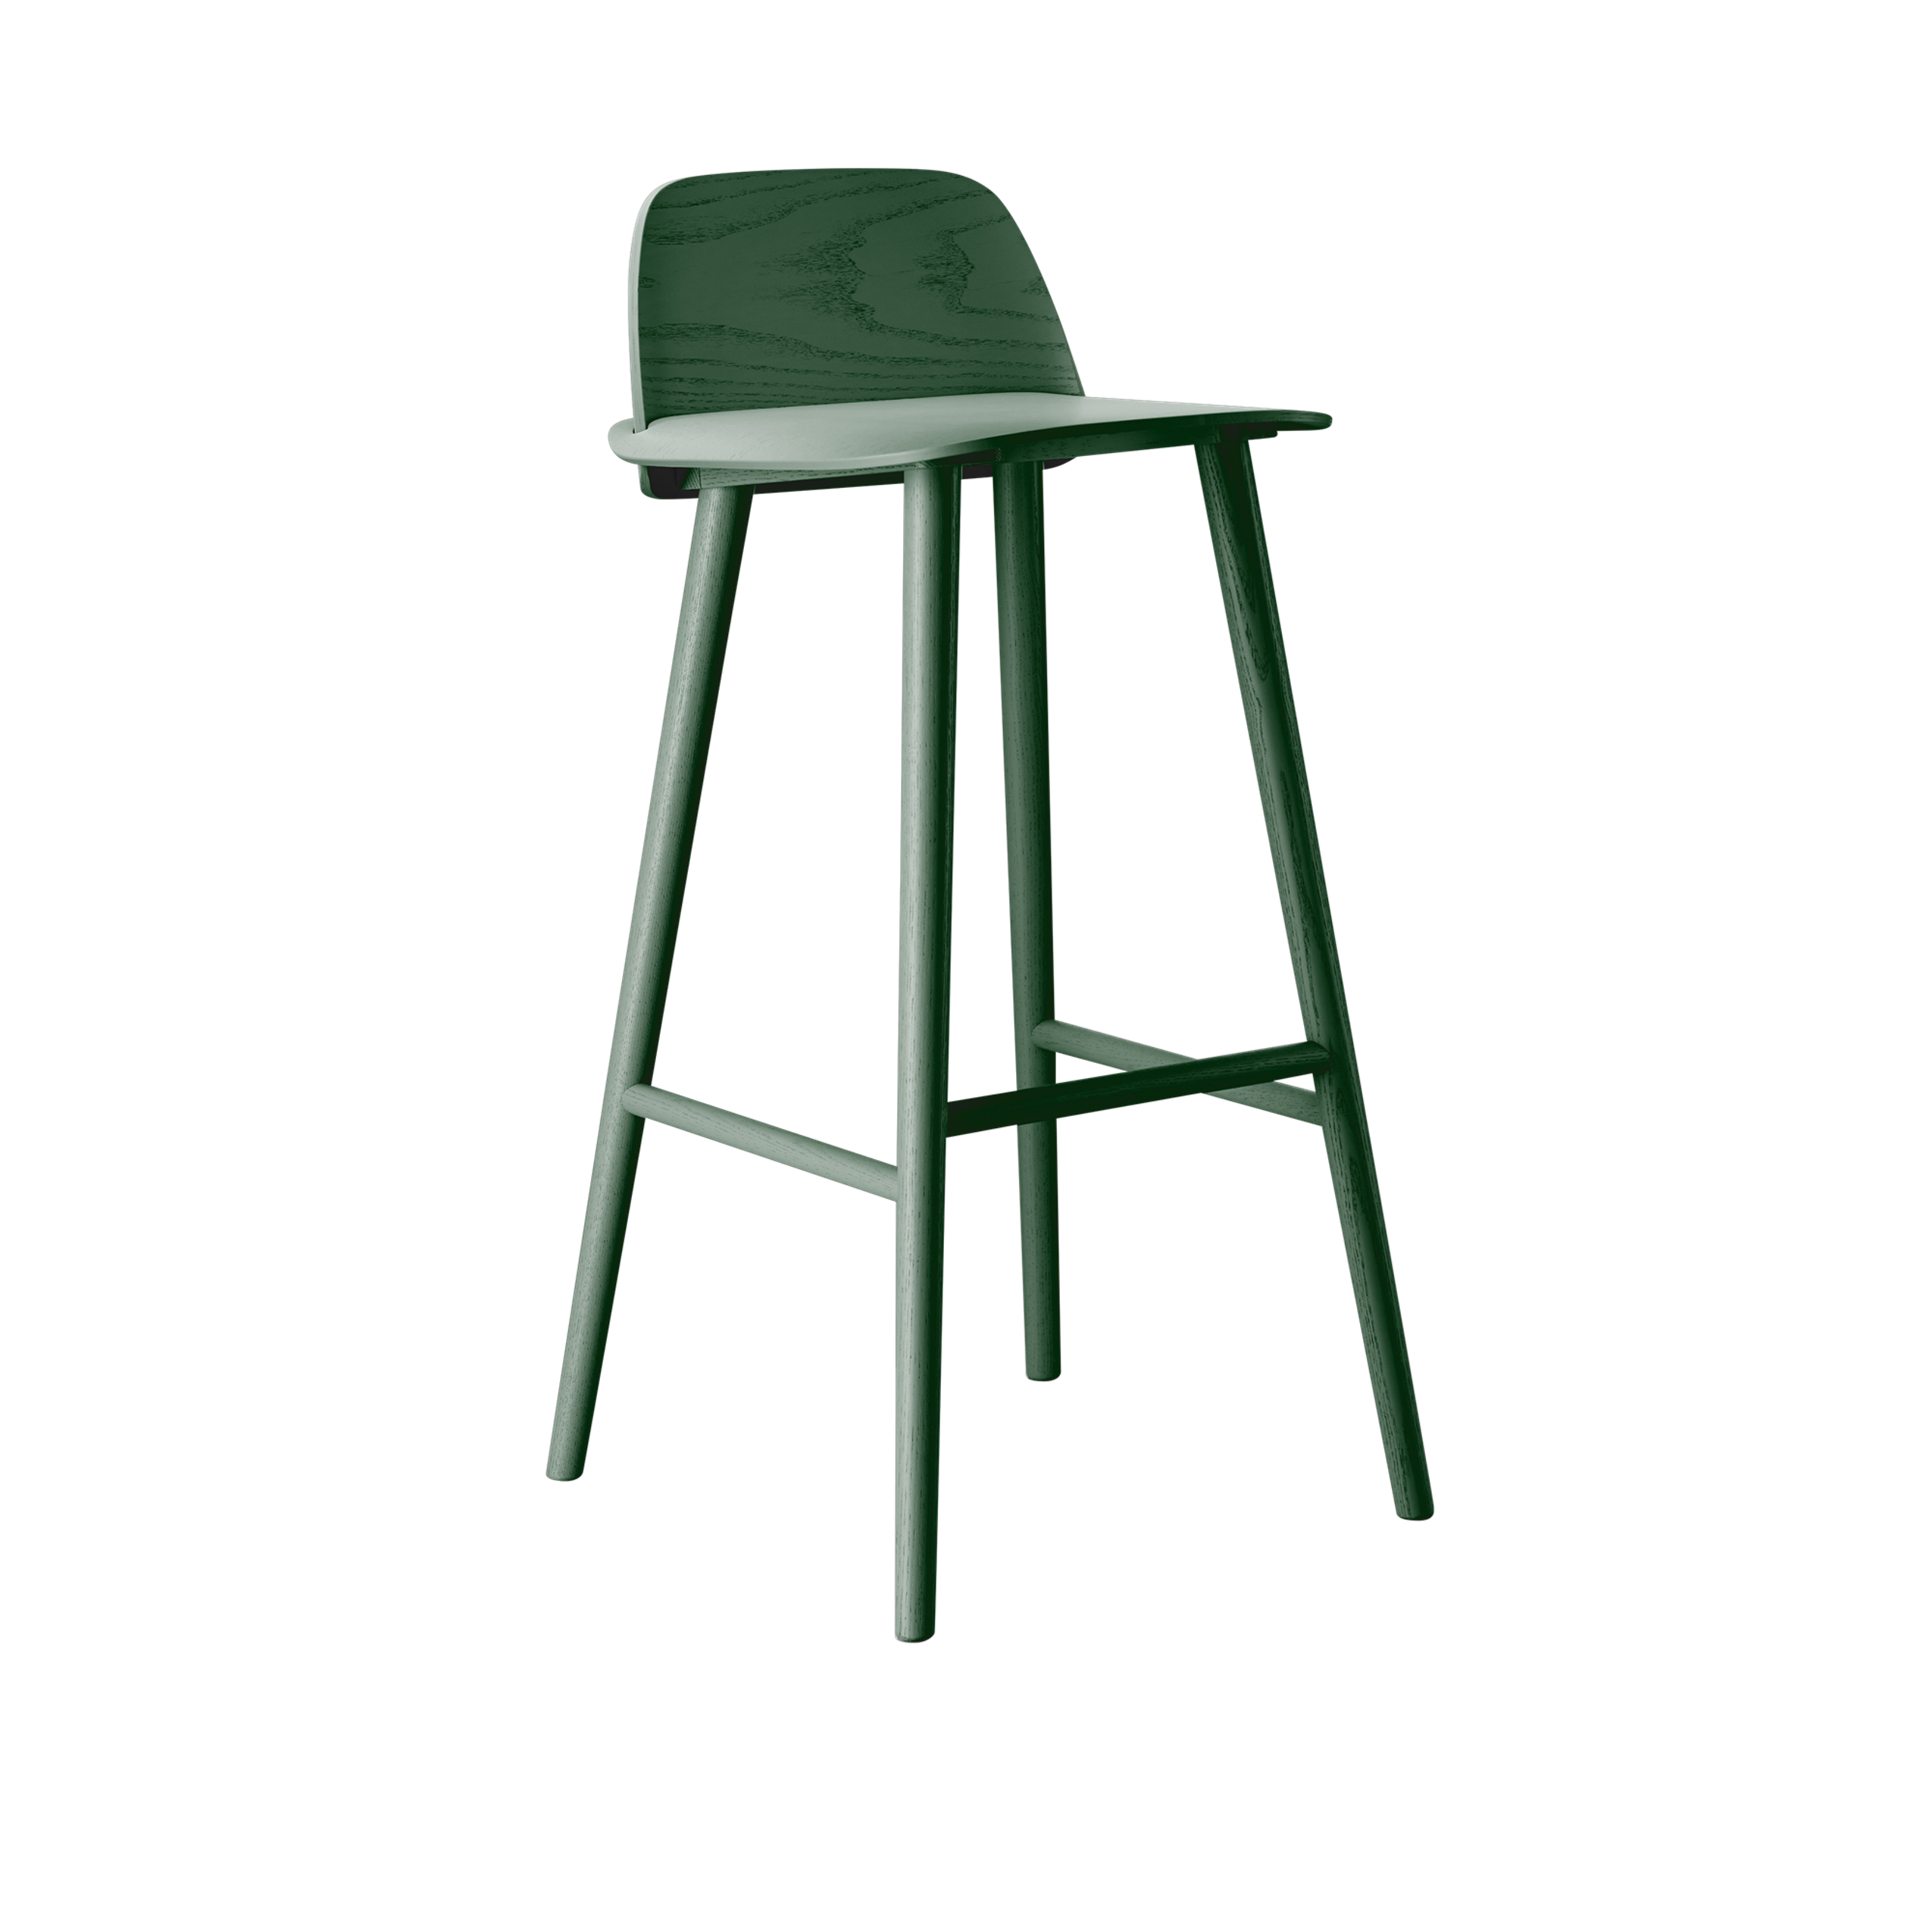 Susan Yeley Interiors: The Nerd Bar Stool Is A Quirky Take On The Conventional